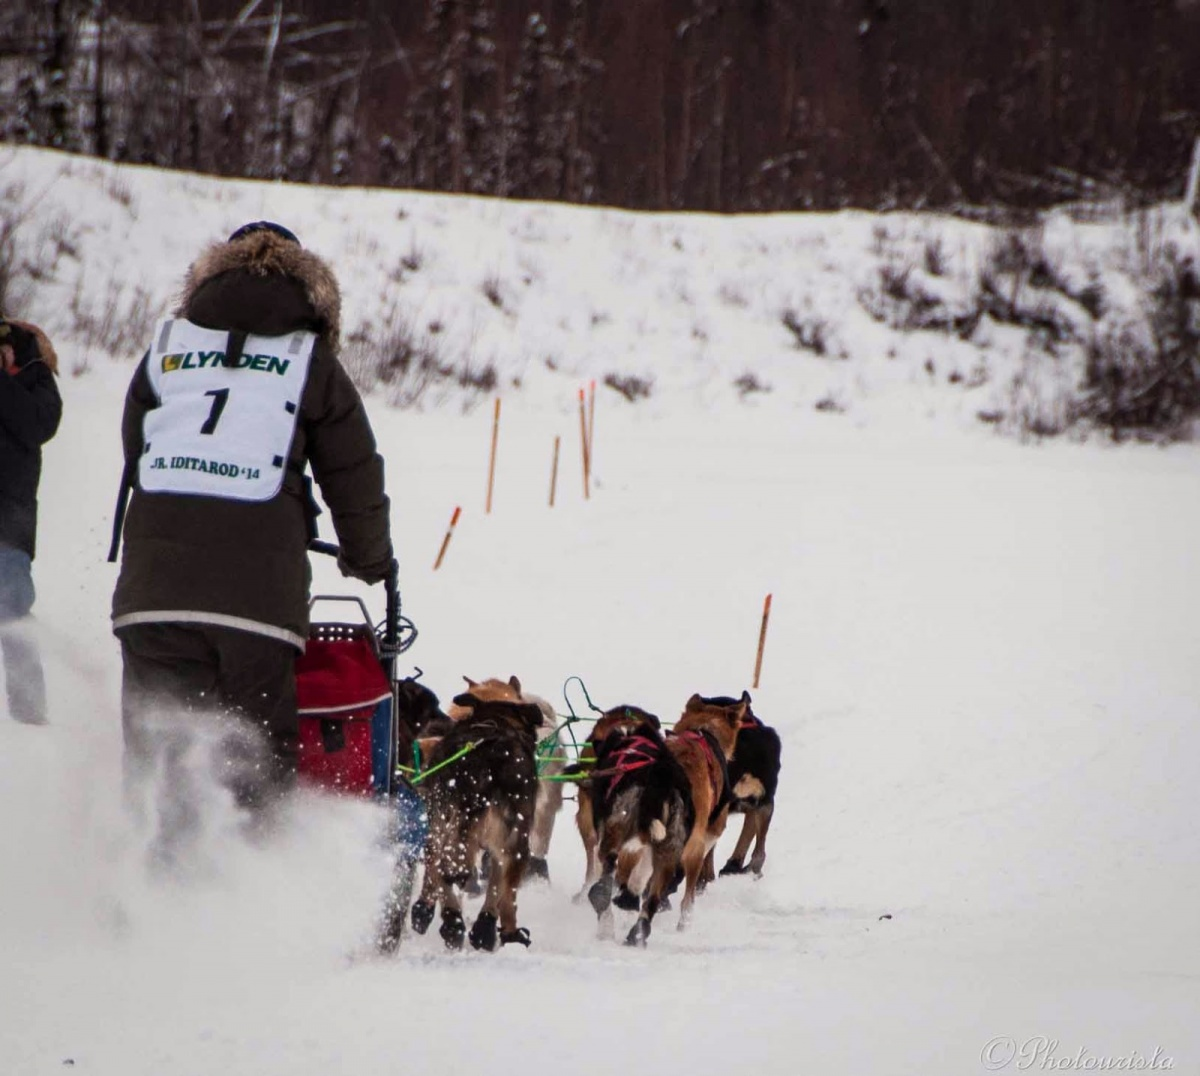 Young woman mushing with dogs at the junior Idiatrod sled dog race